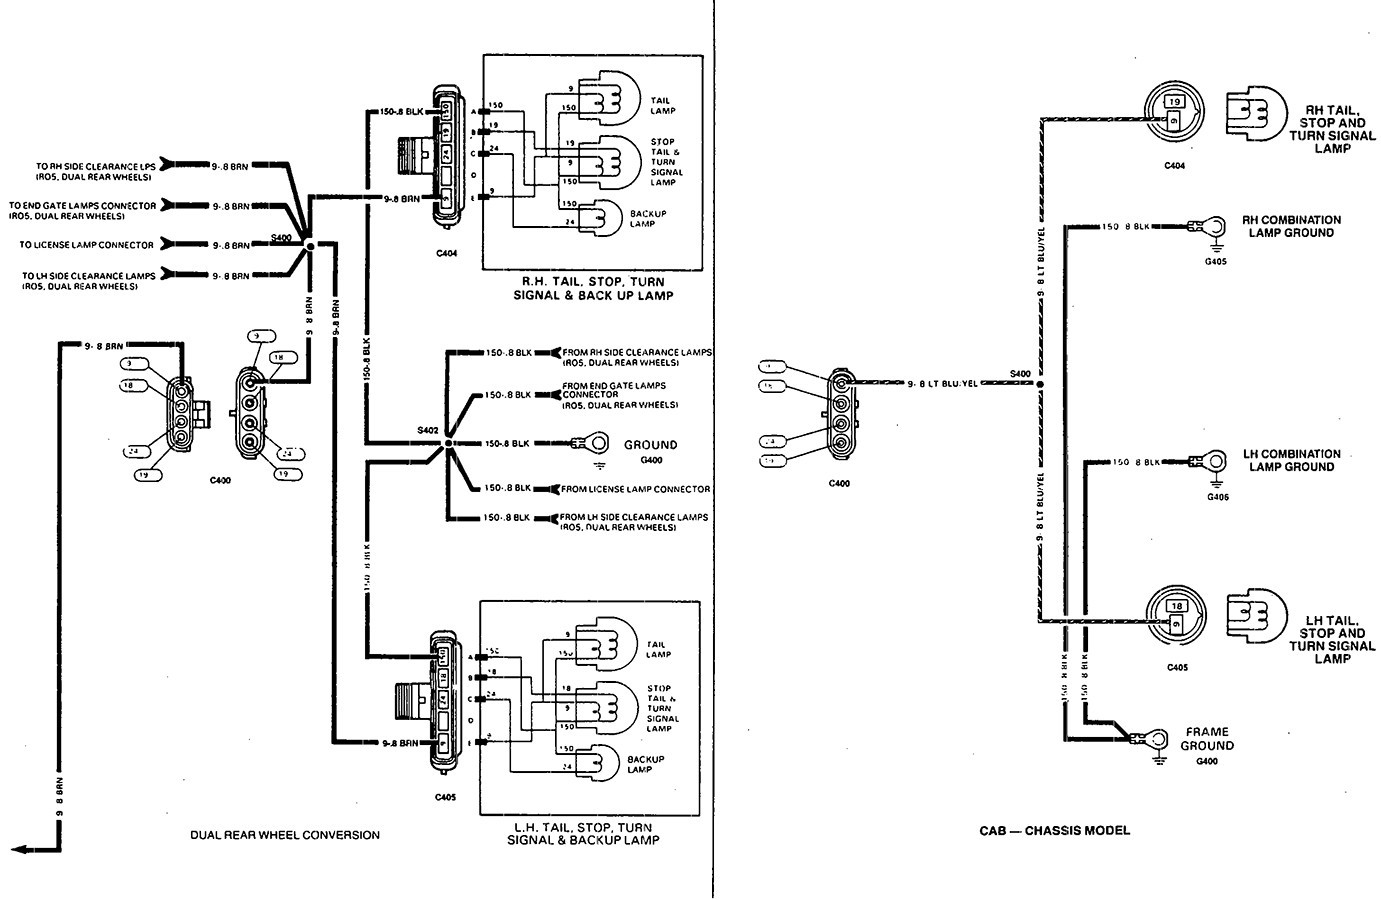 wiring diagram 2002 chevy trailblazer tail lamp schematics wiring rh seniorlivinguniversity co 2002 trailblazer wiring harness diagram 2002 trailblazer fuel pump wiring diagram